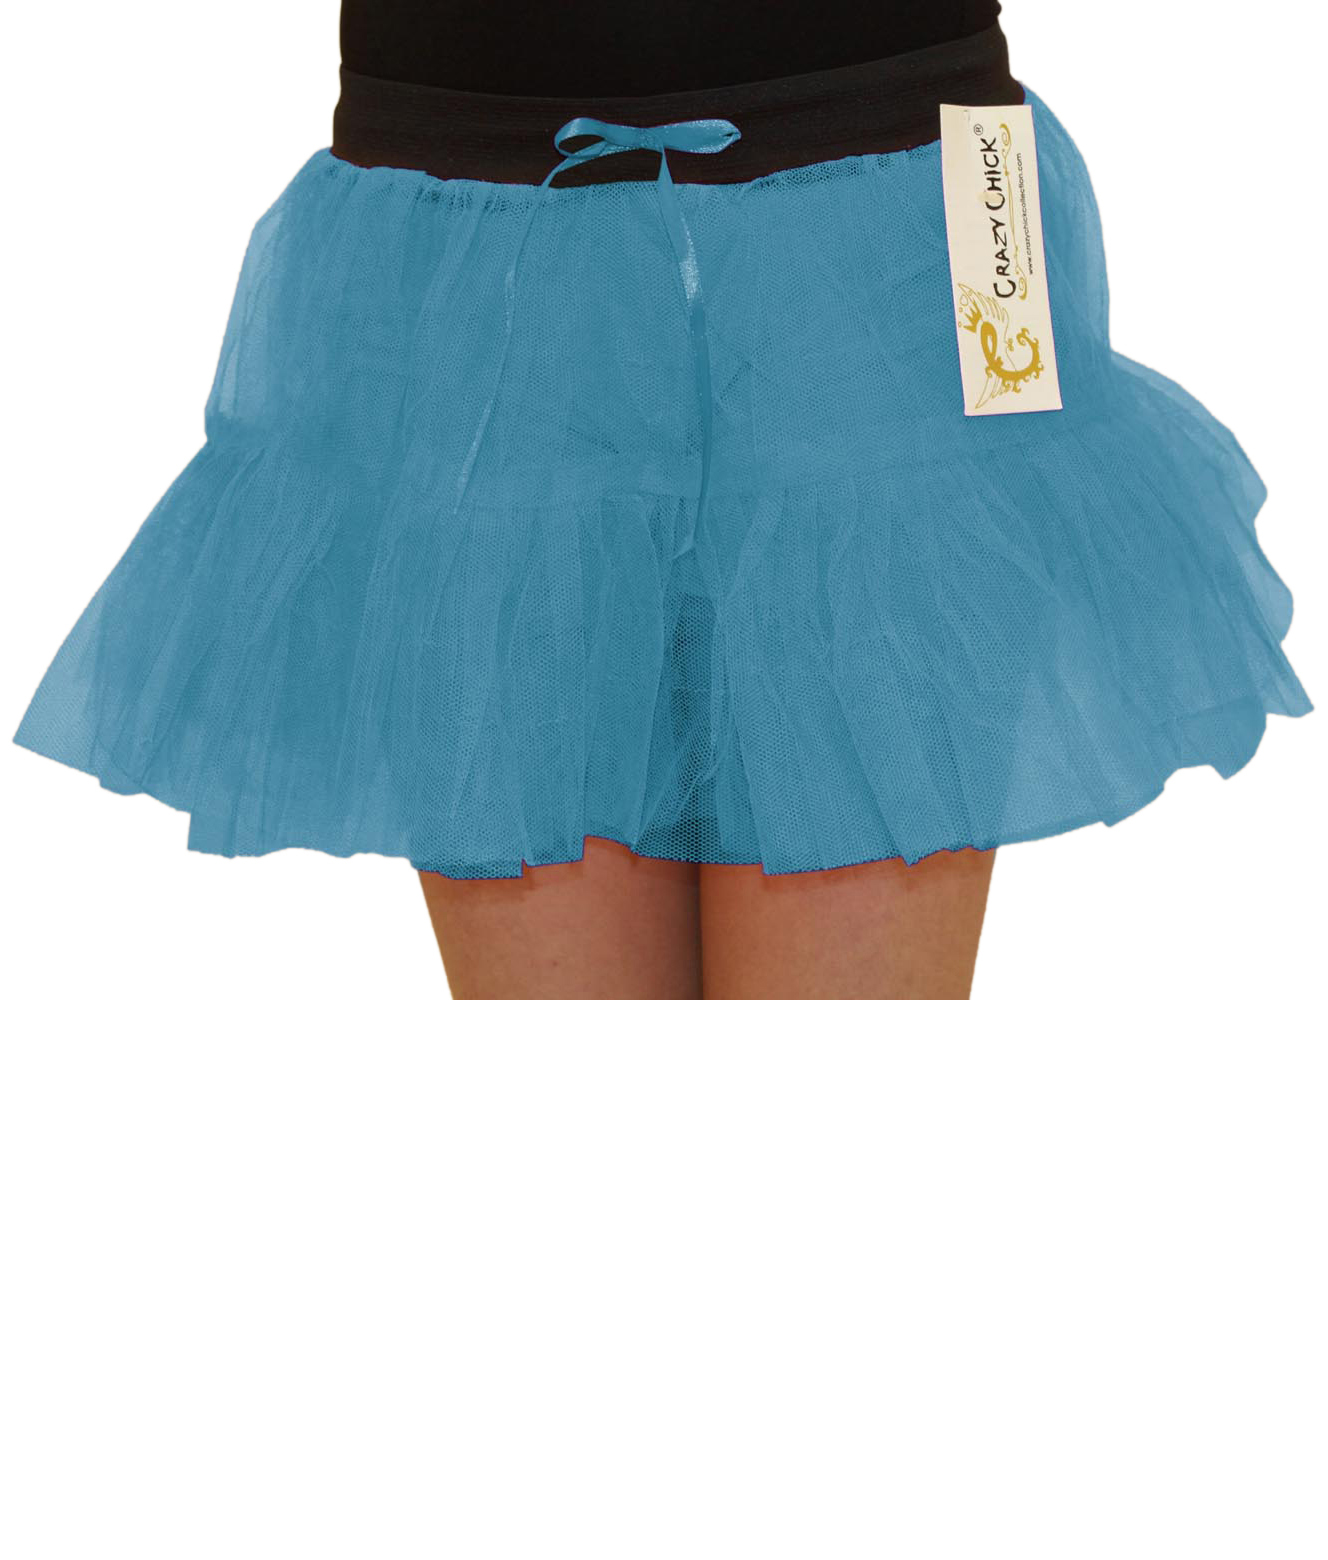 Crazy Chick Girls 2 Layers Turquoise TuTu Skirt